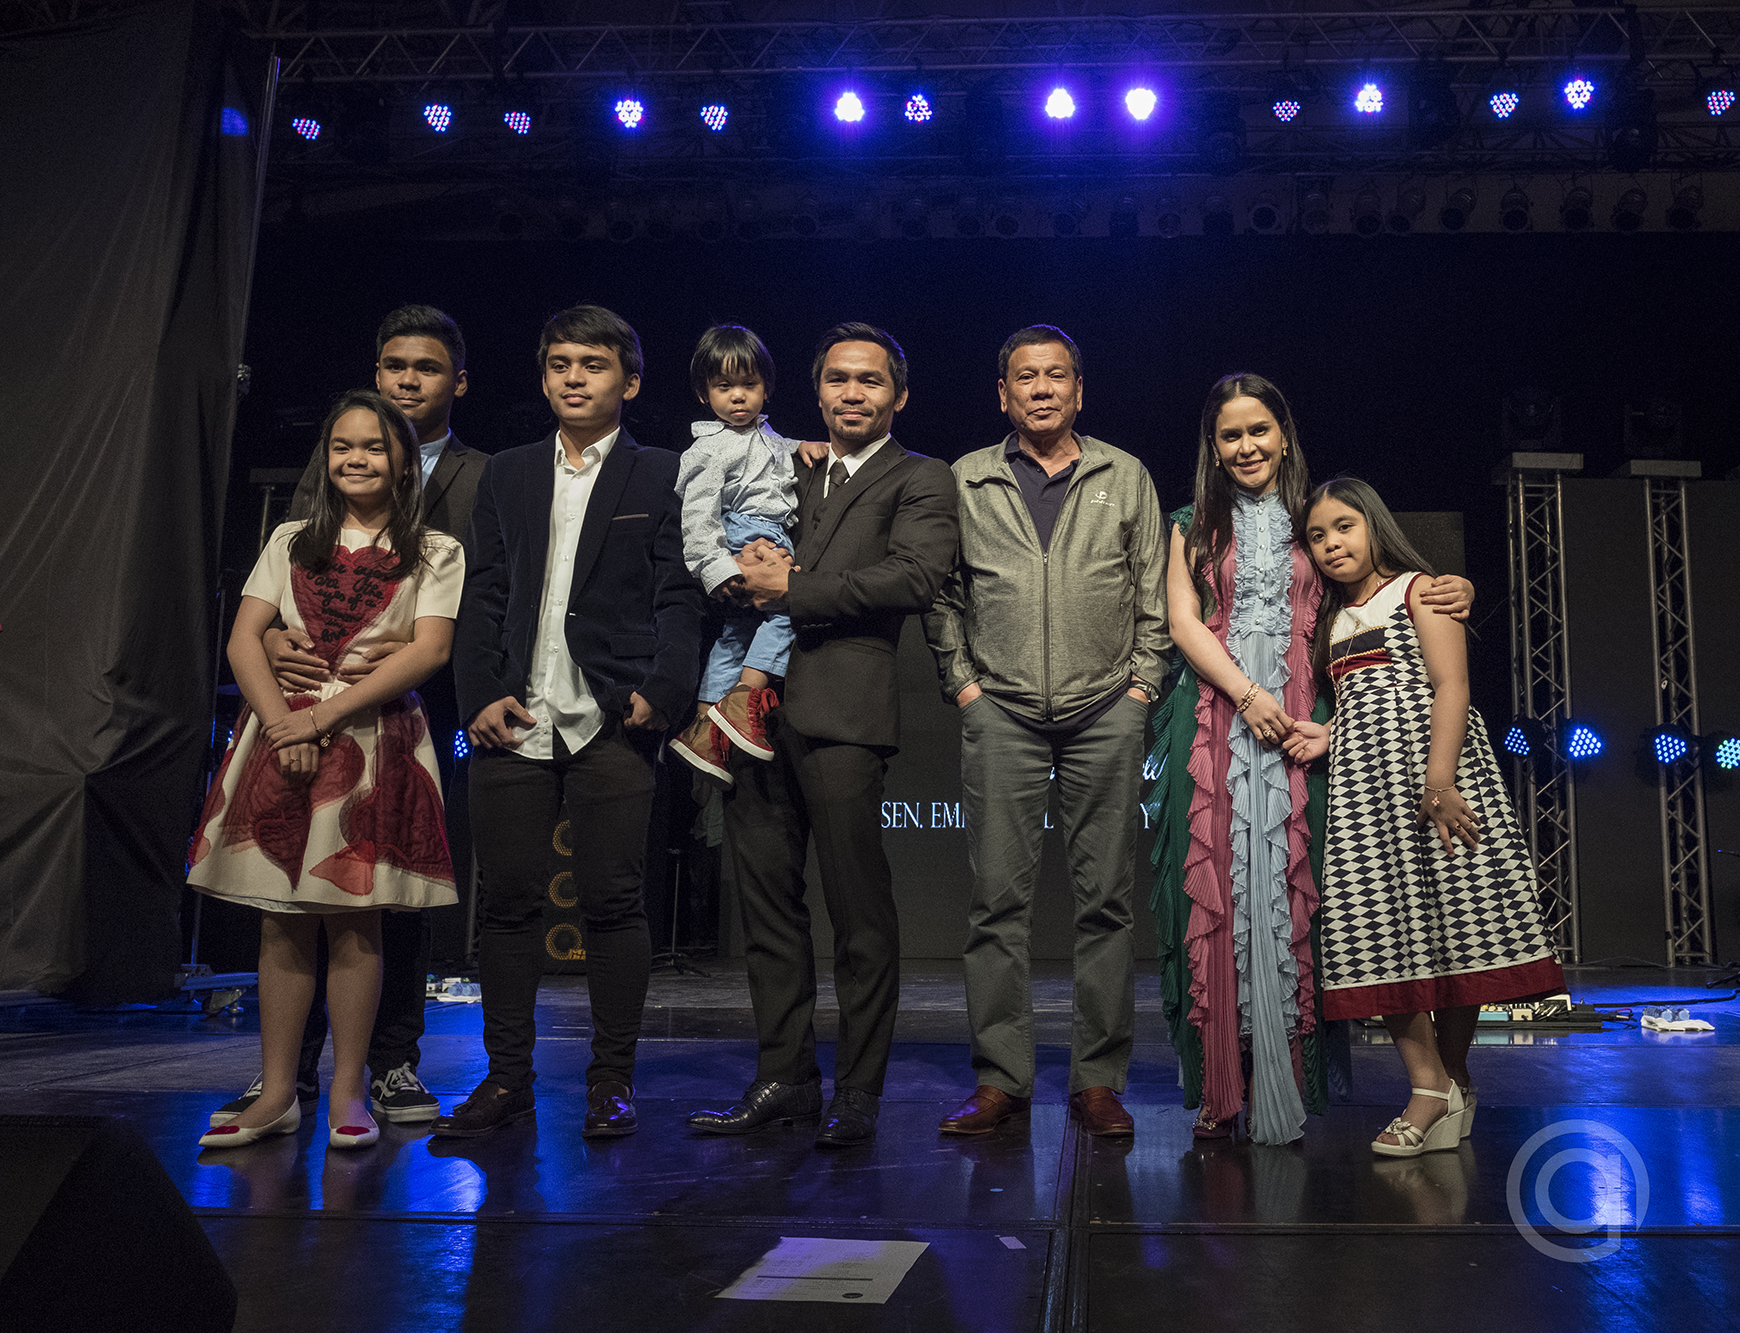 Awesome Exclusive Photos from Manny Pacquiao's 38th Birthday Party by Apple Greatson